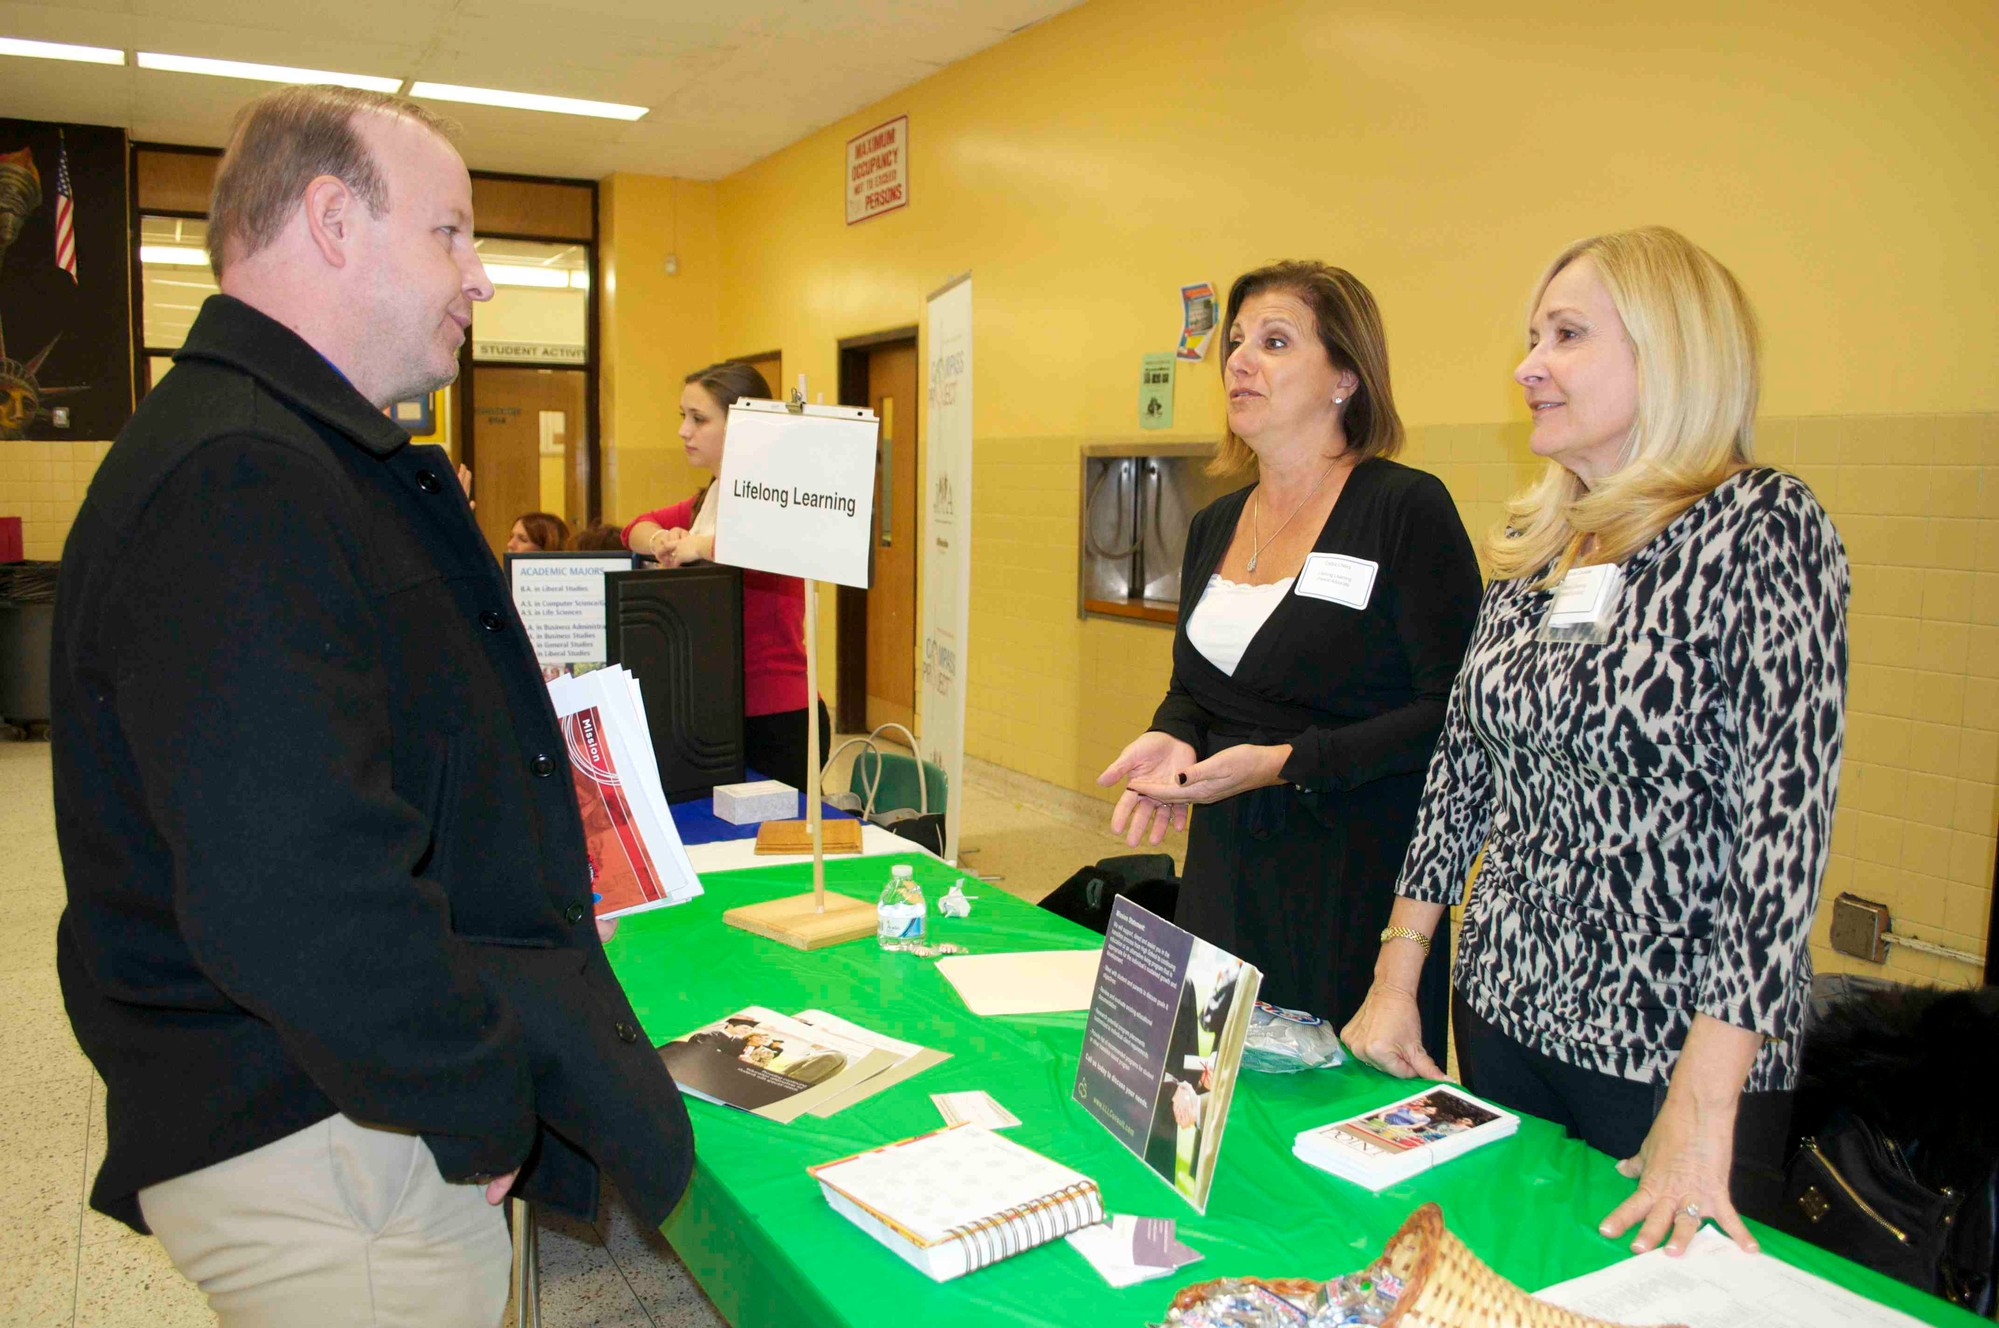 Representatives from Lifelong Learning spoke with dozens of students and family members during Bellmore-Merrick's annual SEPTA College Night for students with learning disabilities.